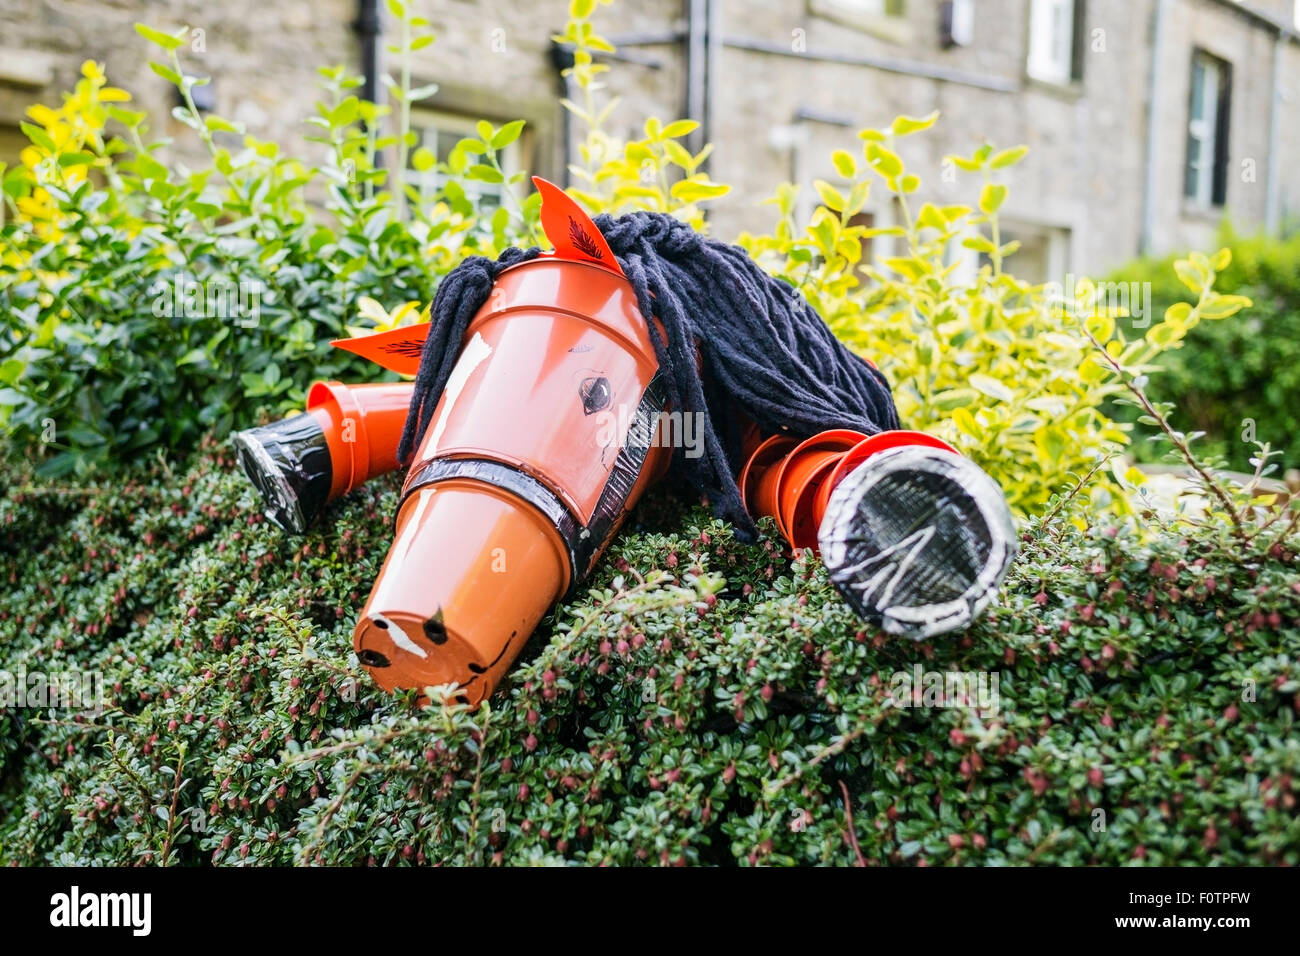 A flowerpot horse peering over a garden hedge in Settle, Yorkshire Dales National Park, England, UK - Stock Image